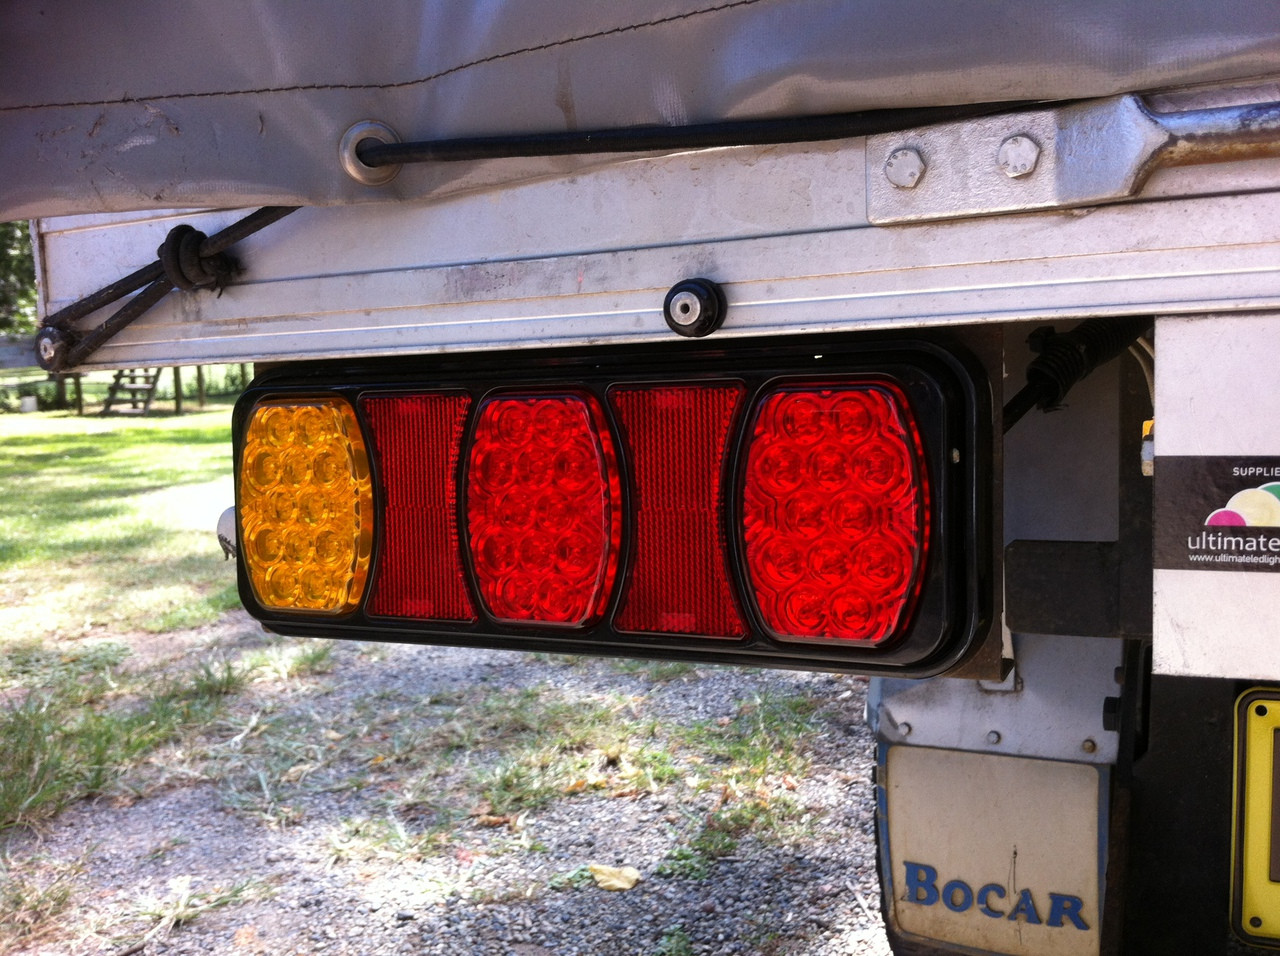 BR80 Series fitted to Tray Top - BR80ARR - Light Truck LED Tail Light Assembly Built in Reflector, Stop, Tail and Indicator. Ultimate LED.